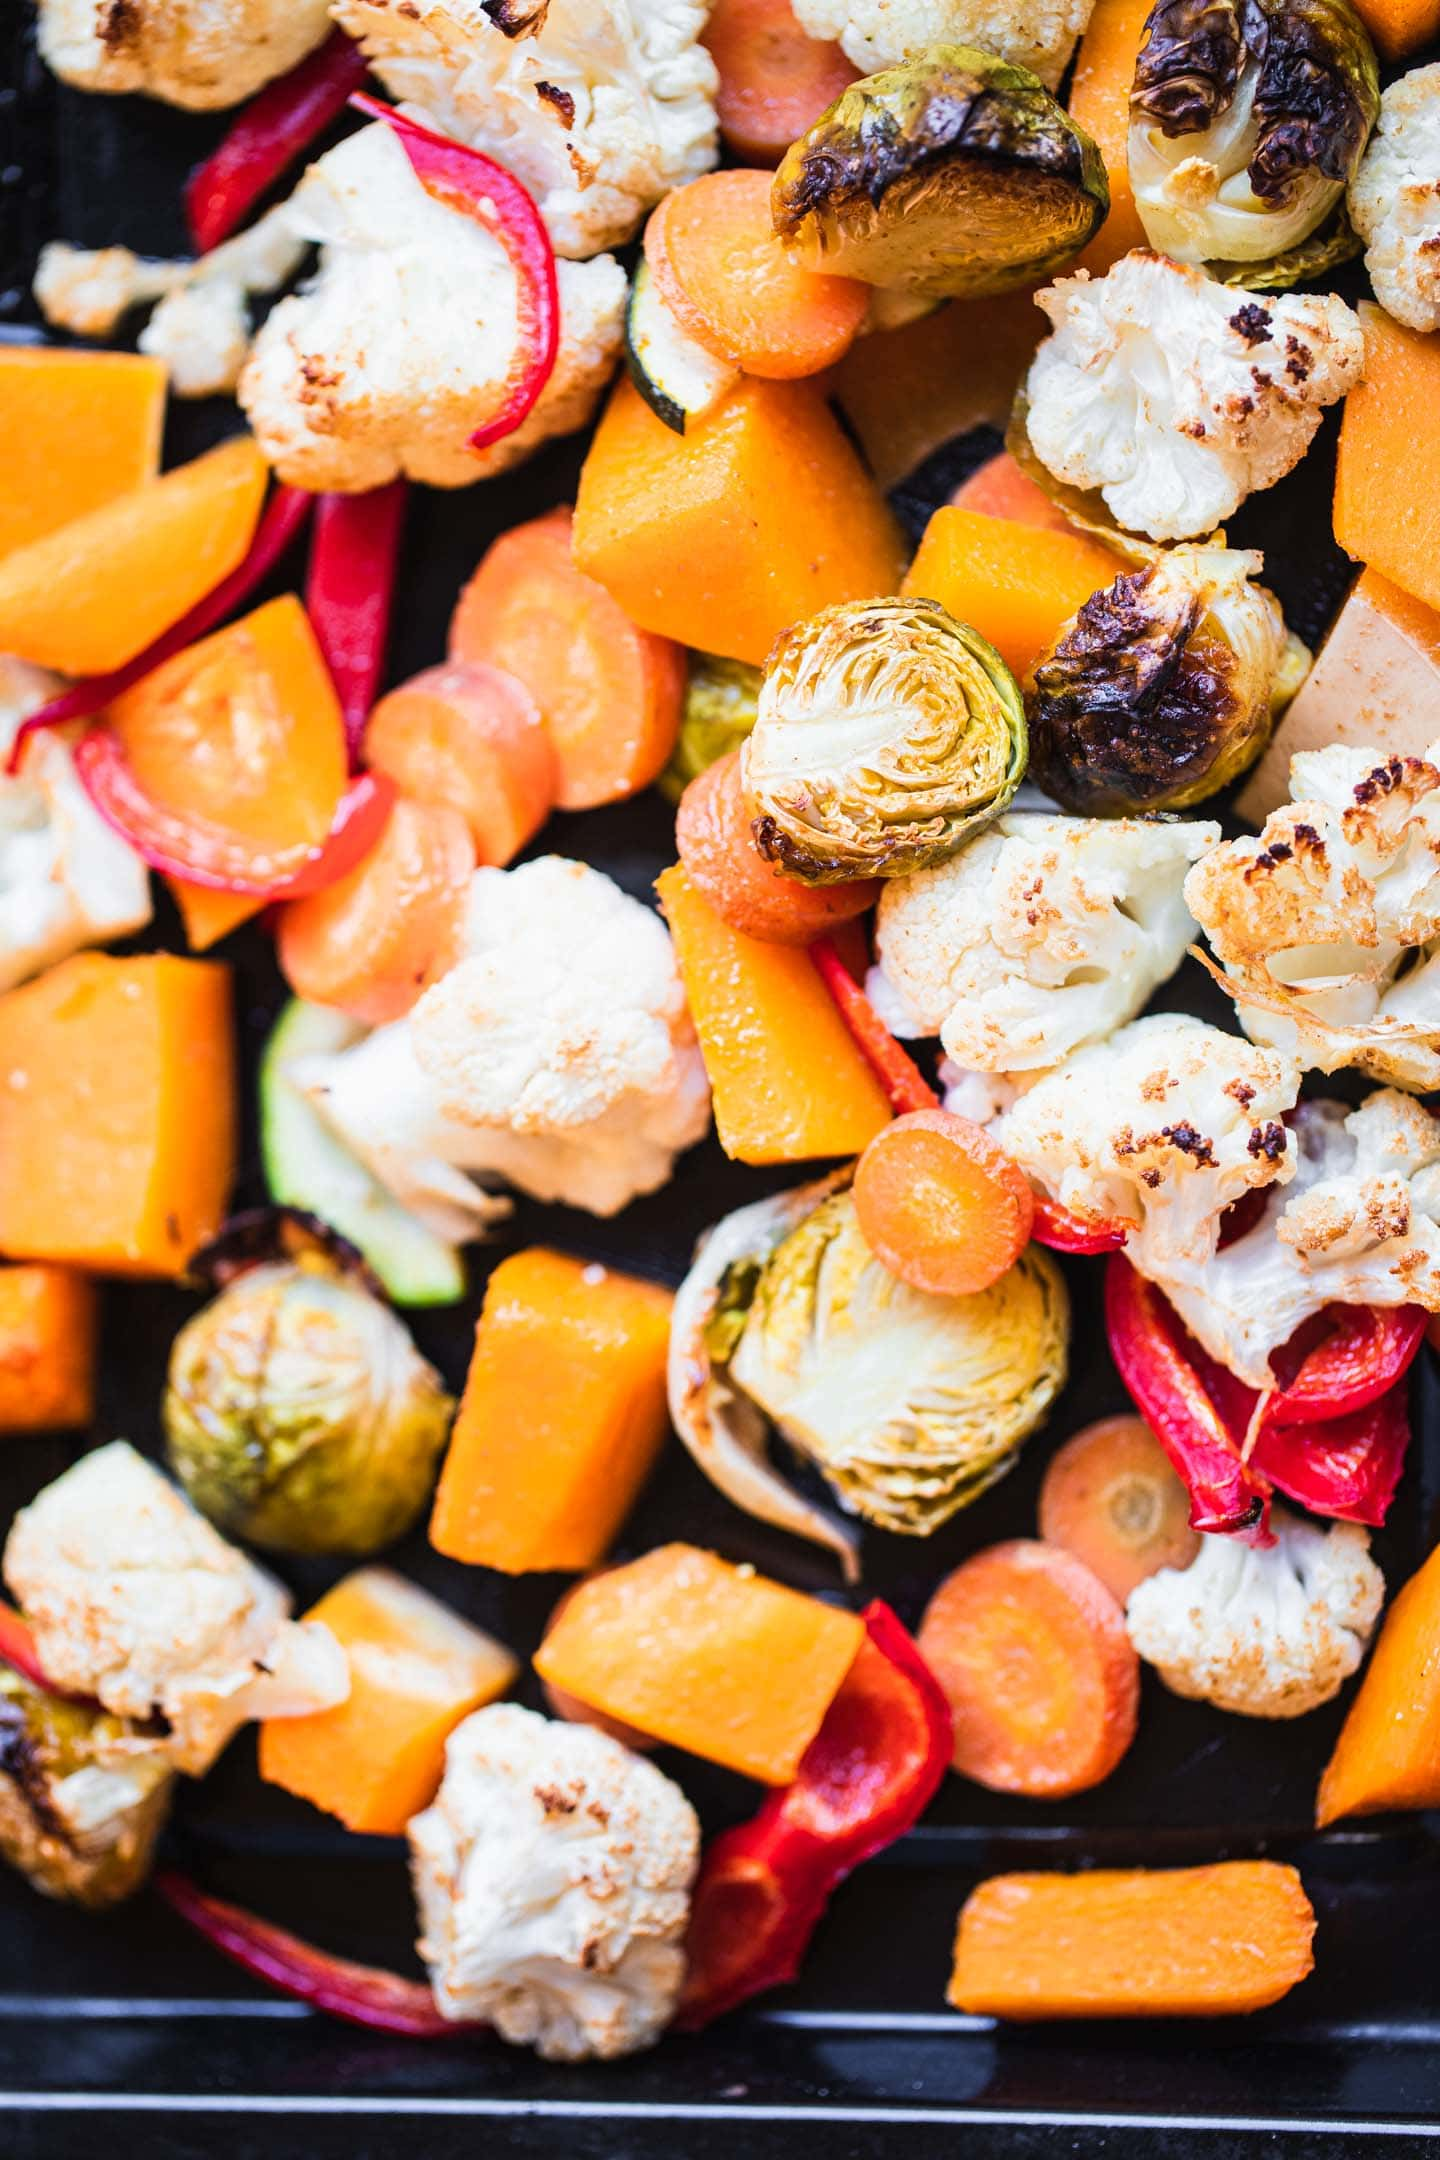 Roasted vegetables on a baking tray